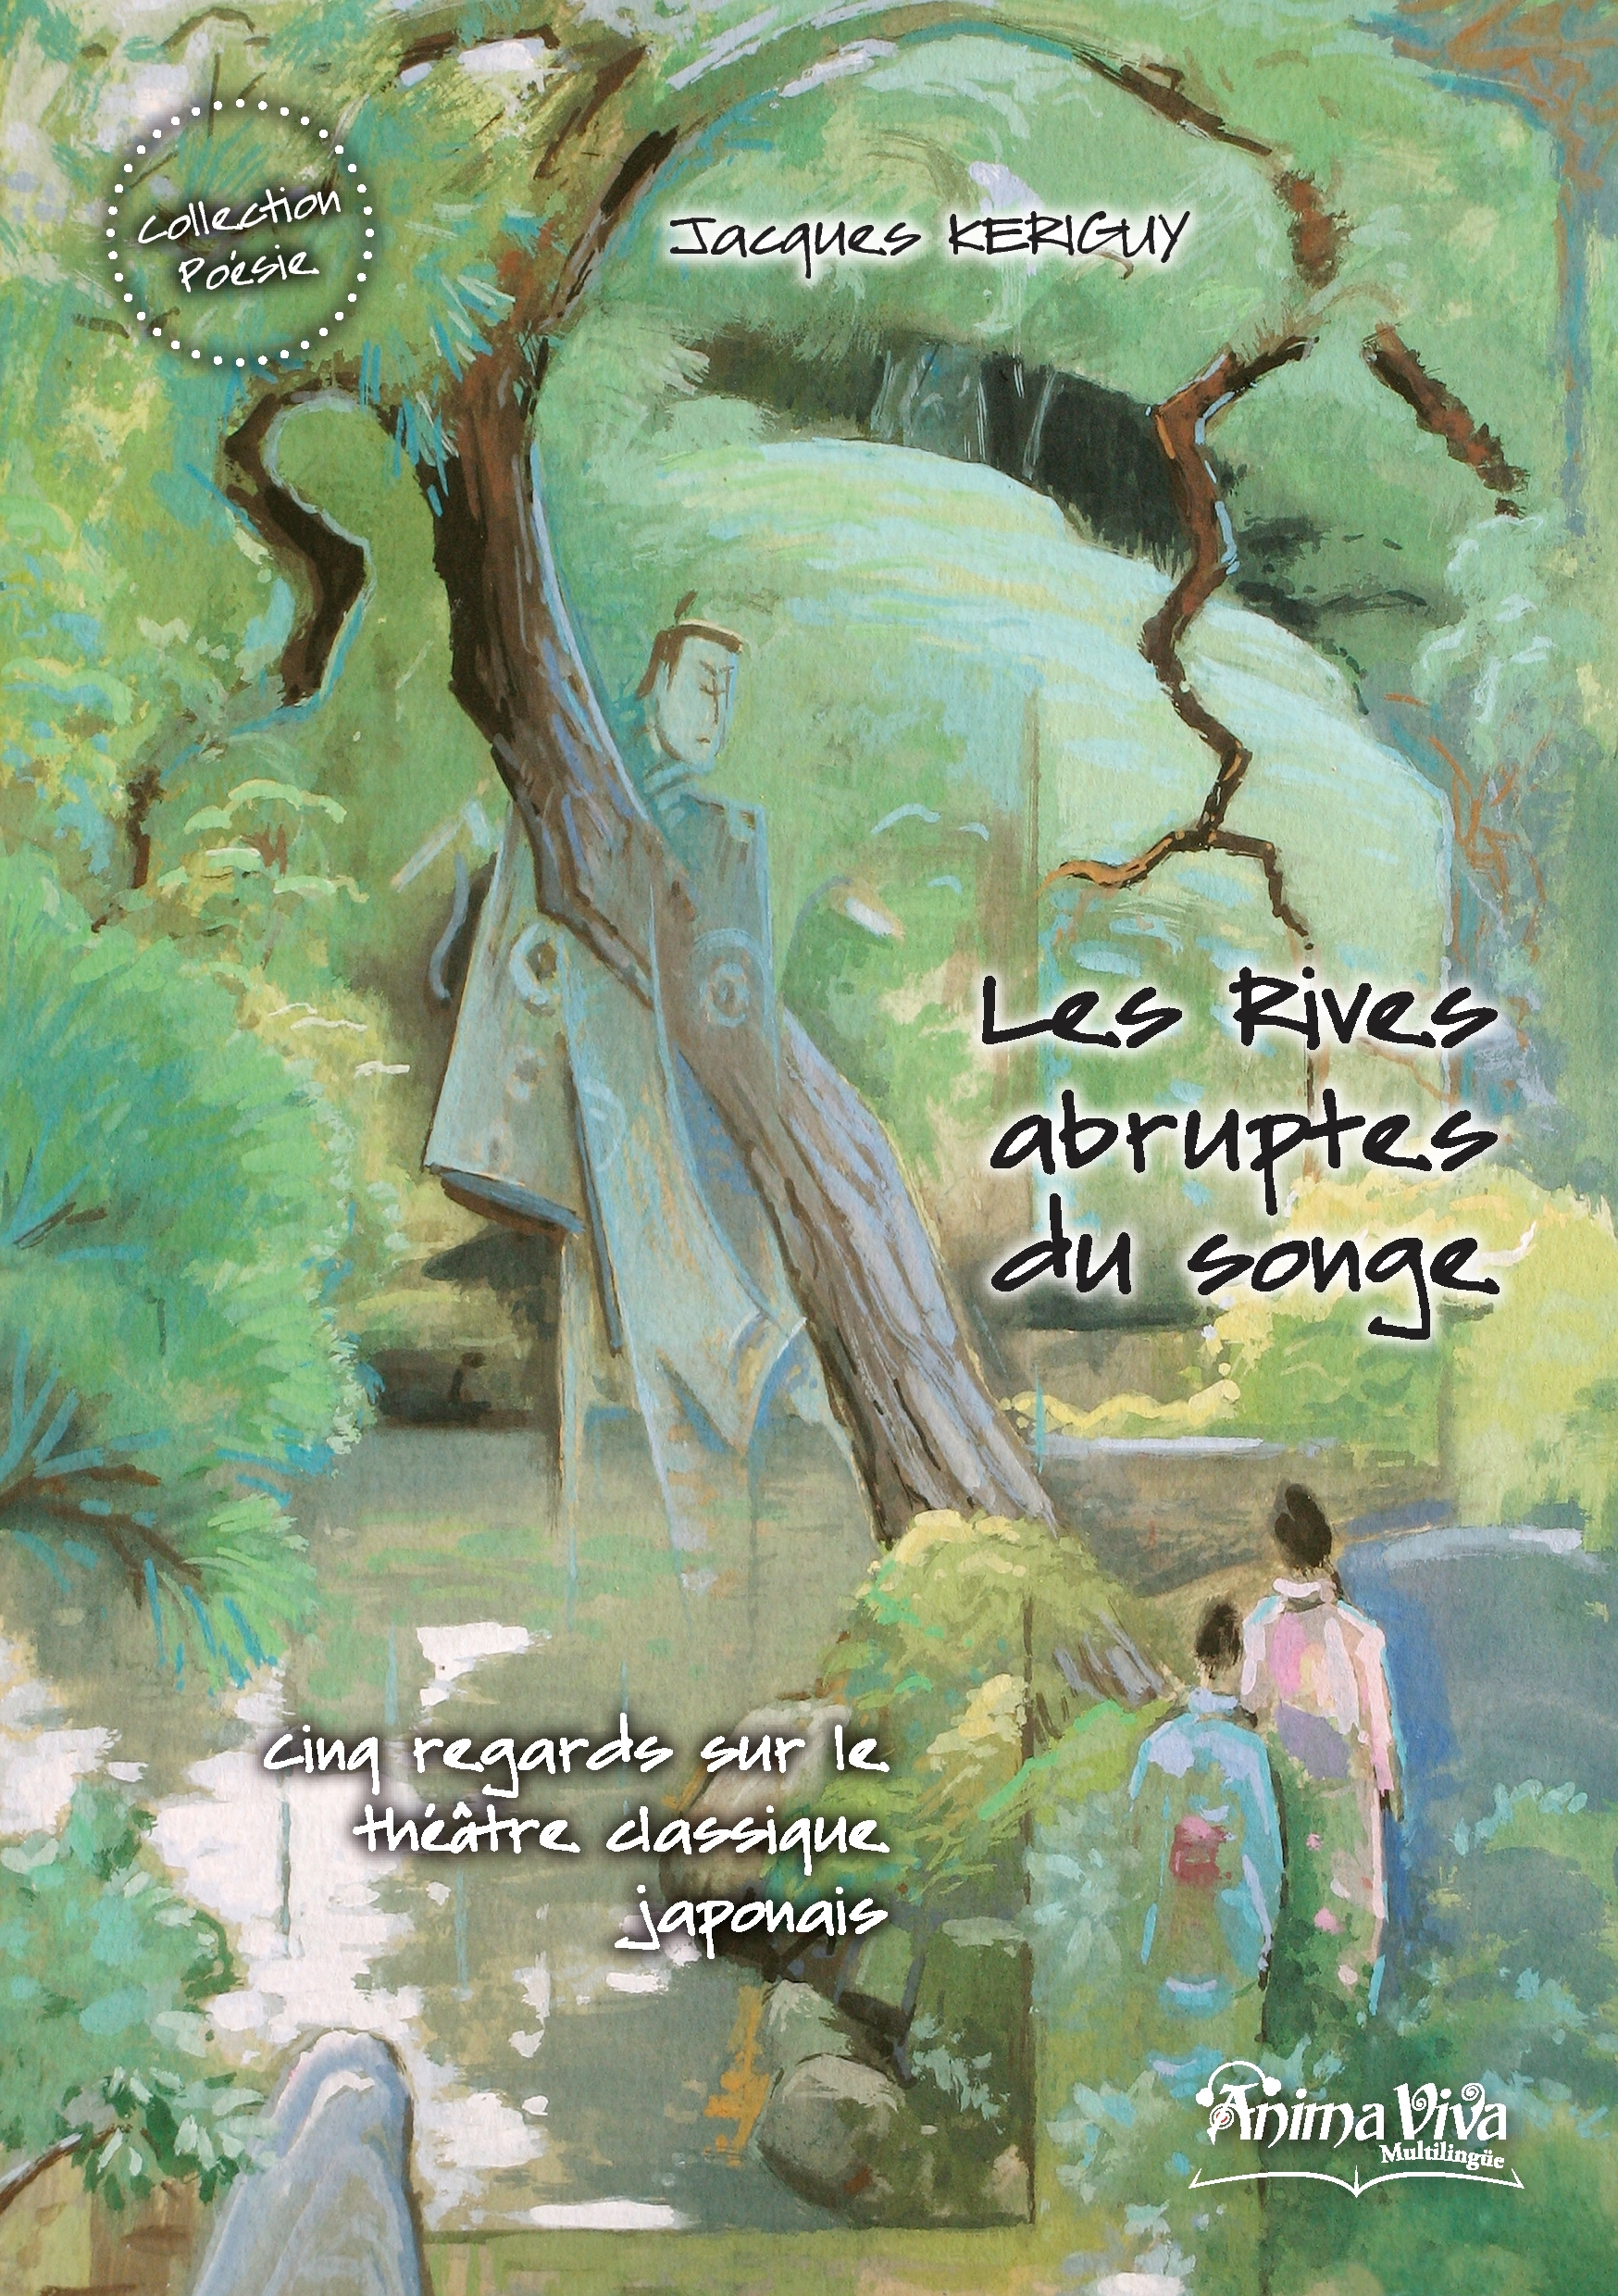 COLLECTION POESIE - T04 - LES RIVES ABRUPTES DU SONGE - CINQ REGARDS SUR LE THEATRE CLASSIQUE JAPONA